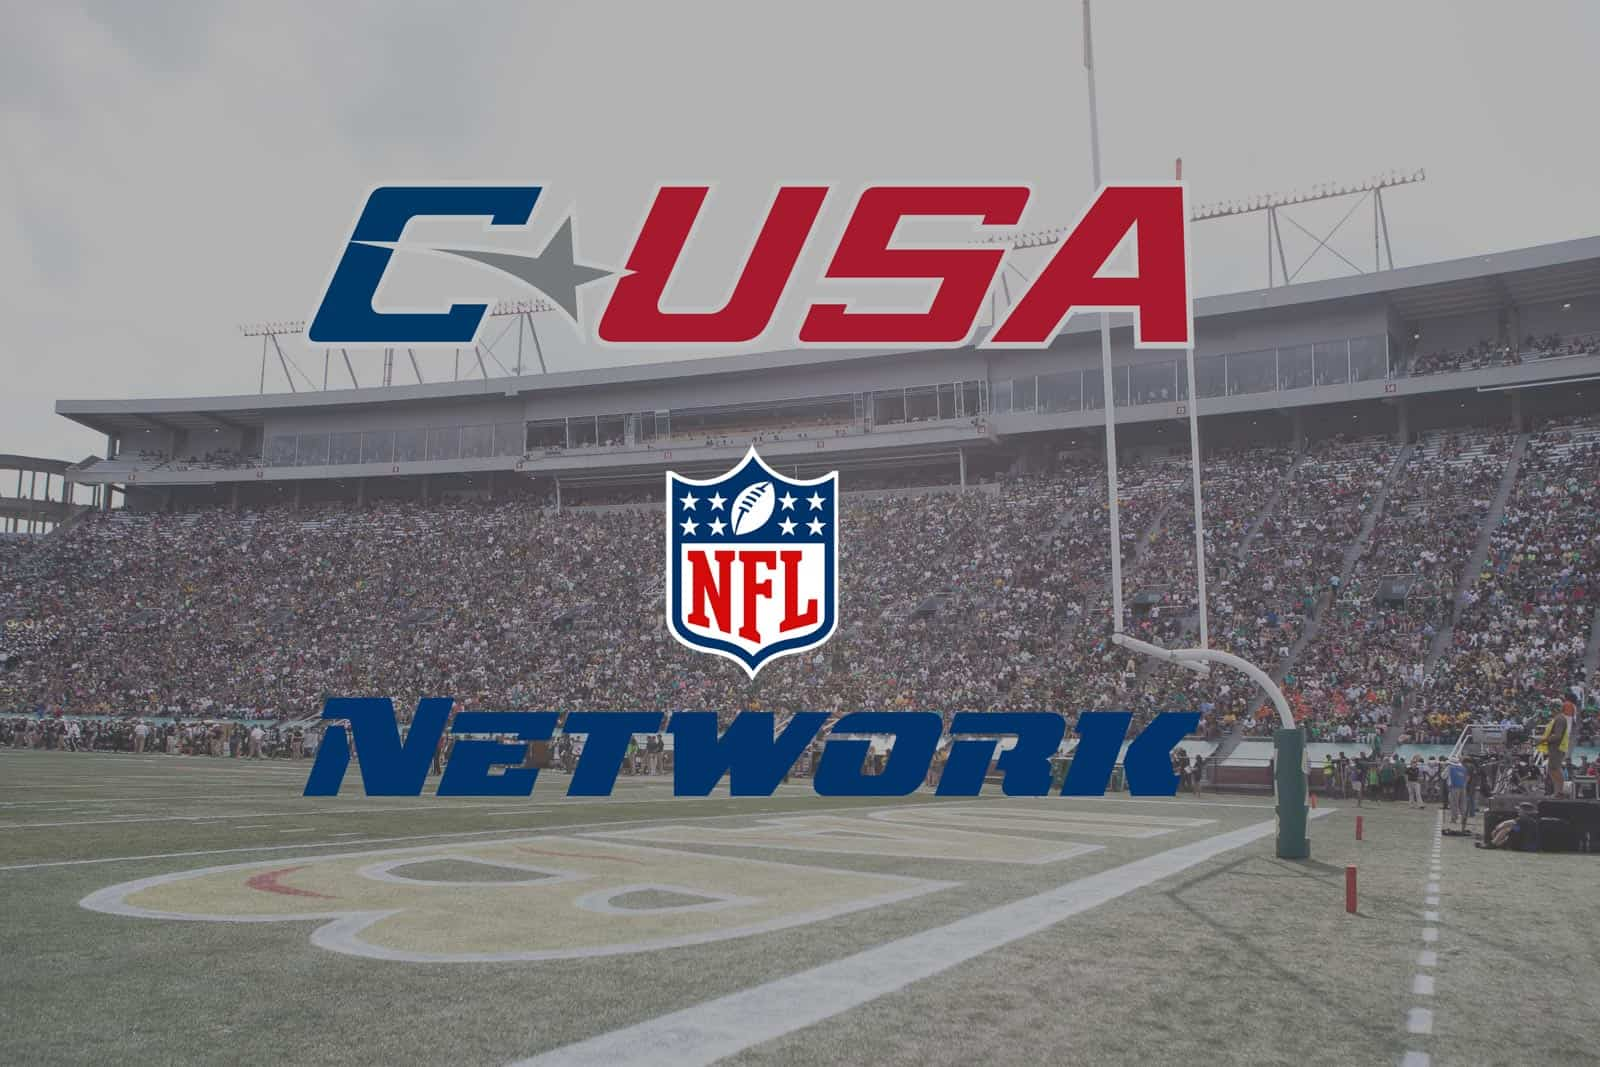 Conference USA - NFLN